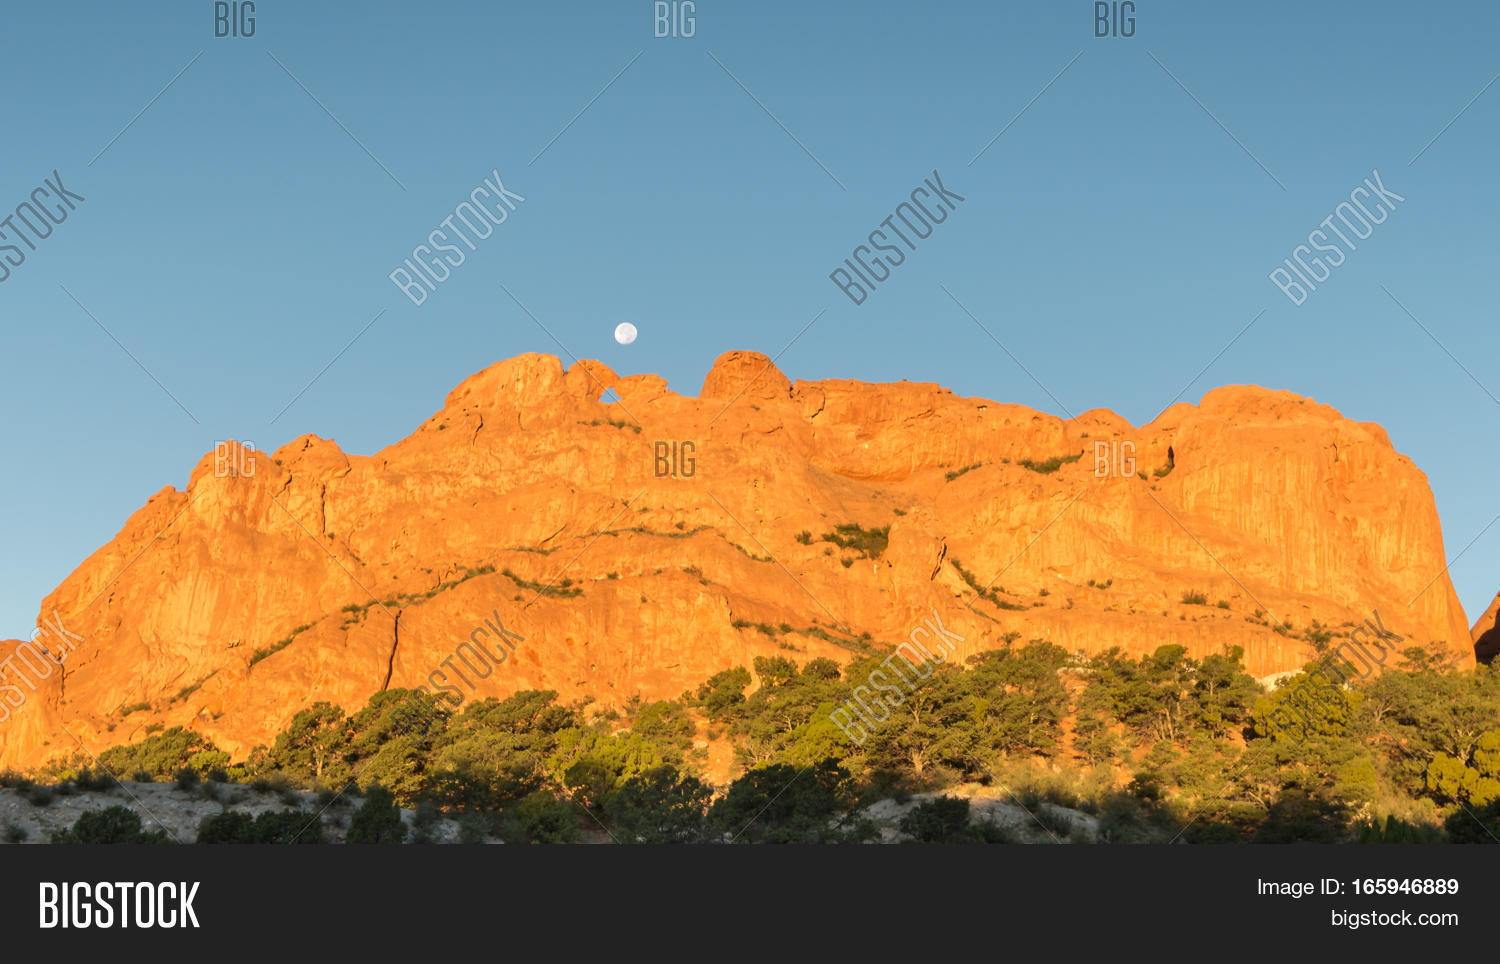 Kissing Camels Named Image Photo Free Trial Bigstock